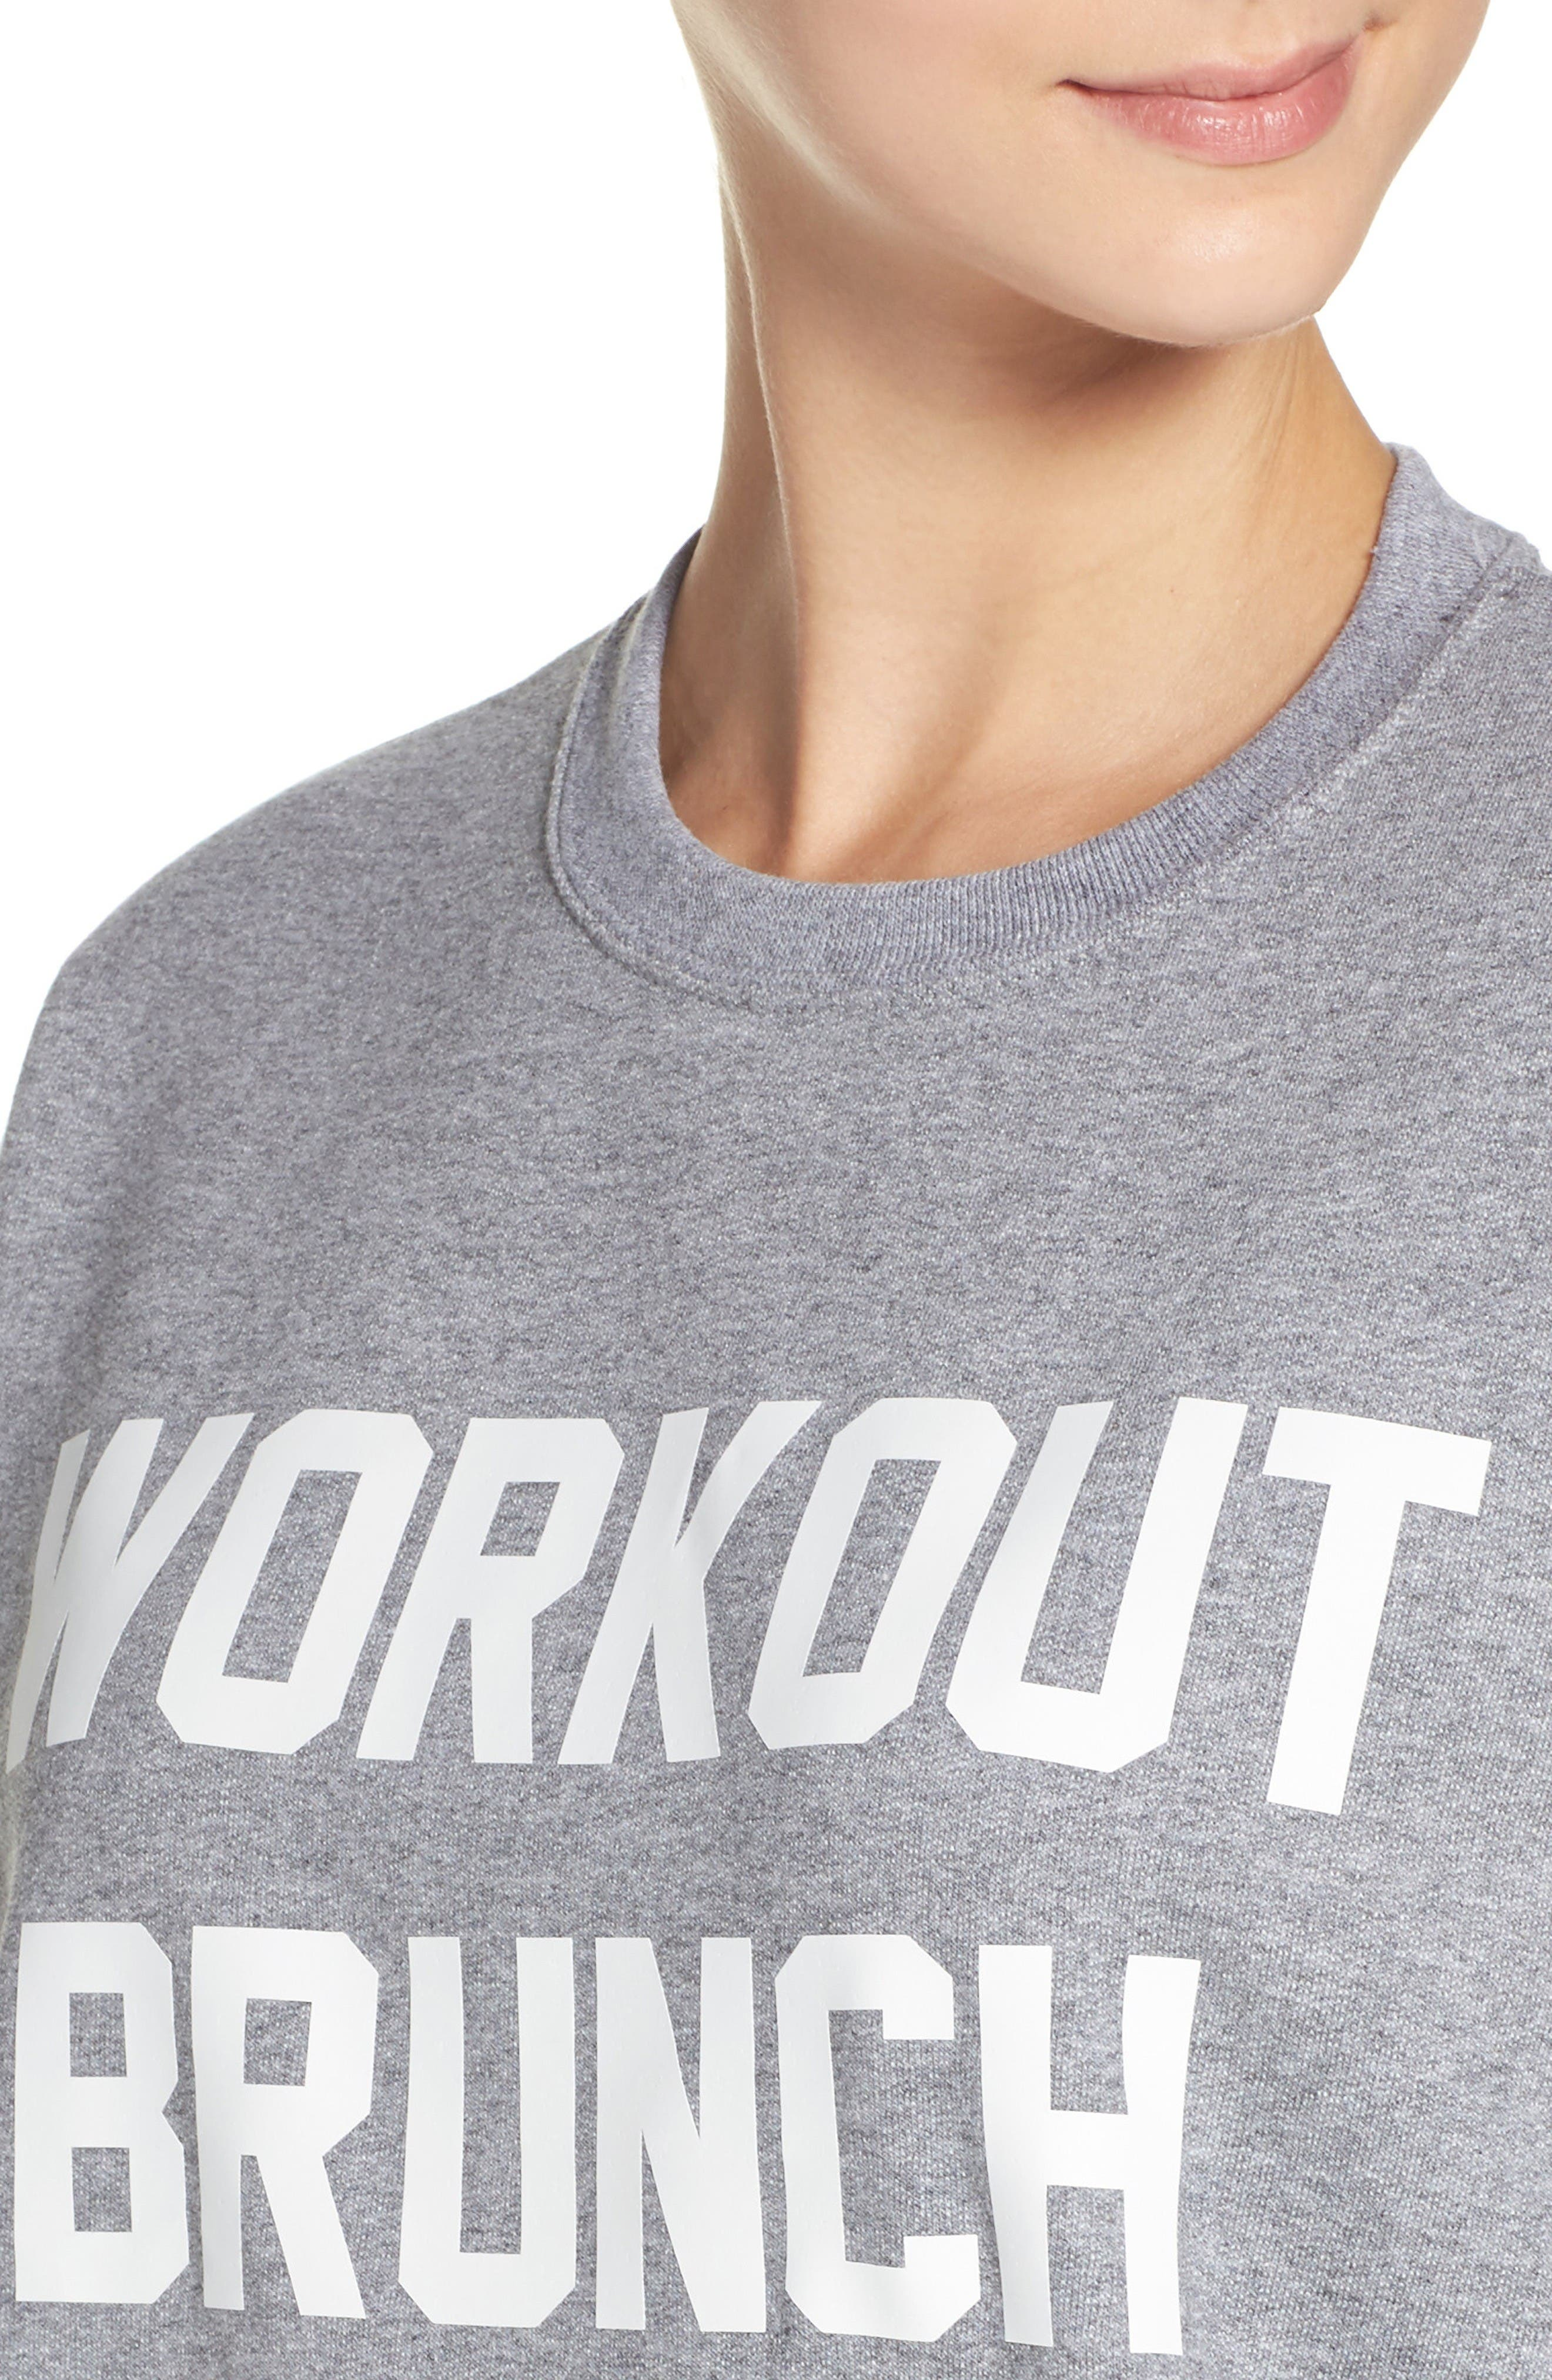 Alternate Image 4  - Private Party Workout Brunch Repeat Sweatshirt